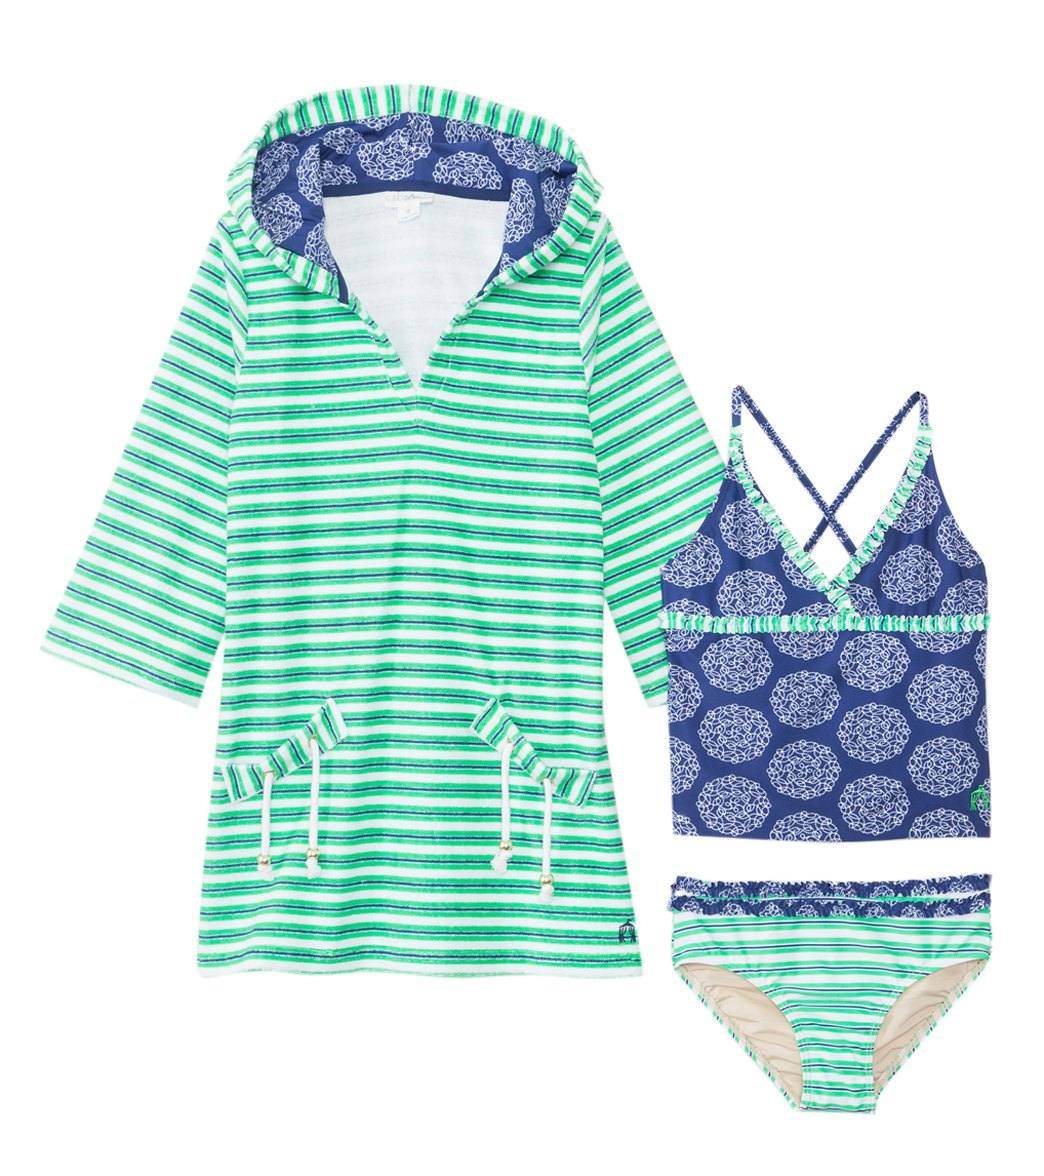 71d9becadc ... Cabana Life Girls  UPF 50+ Nautical Knots Two Piece Swimsuit   Terry  Cover Up. Share